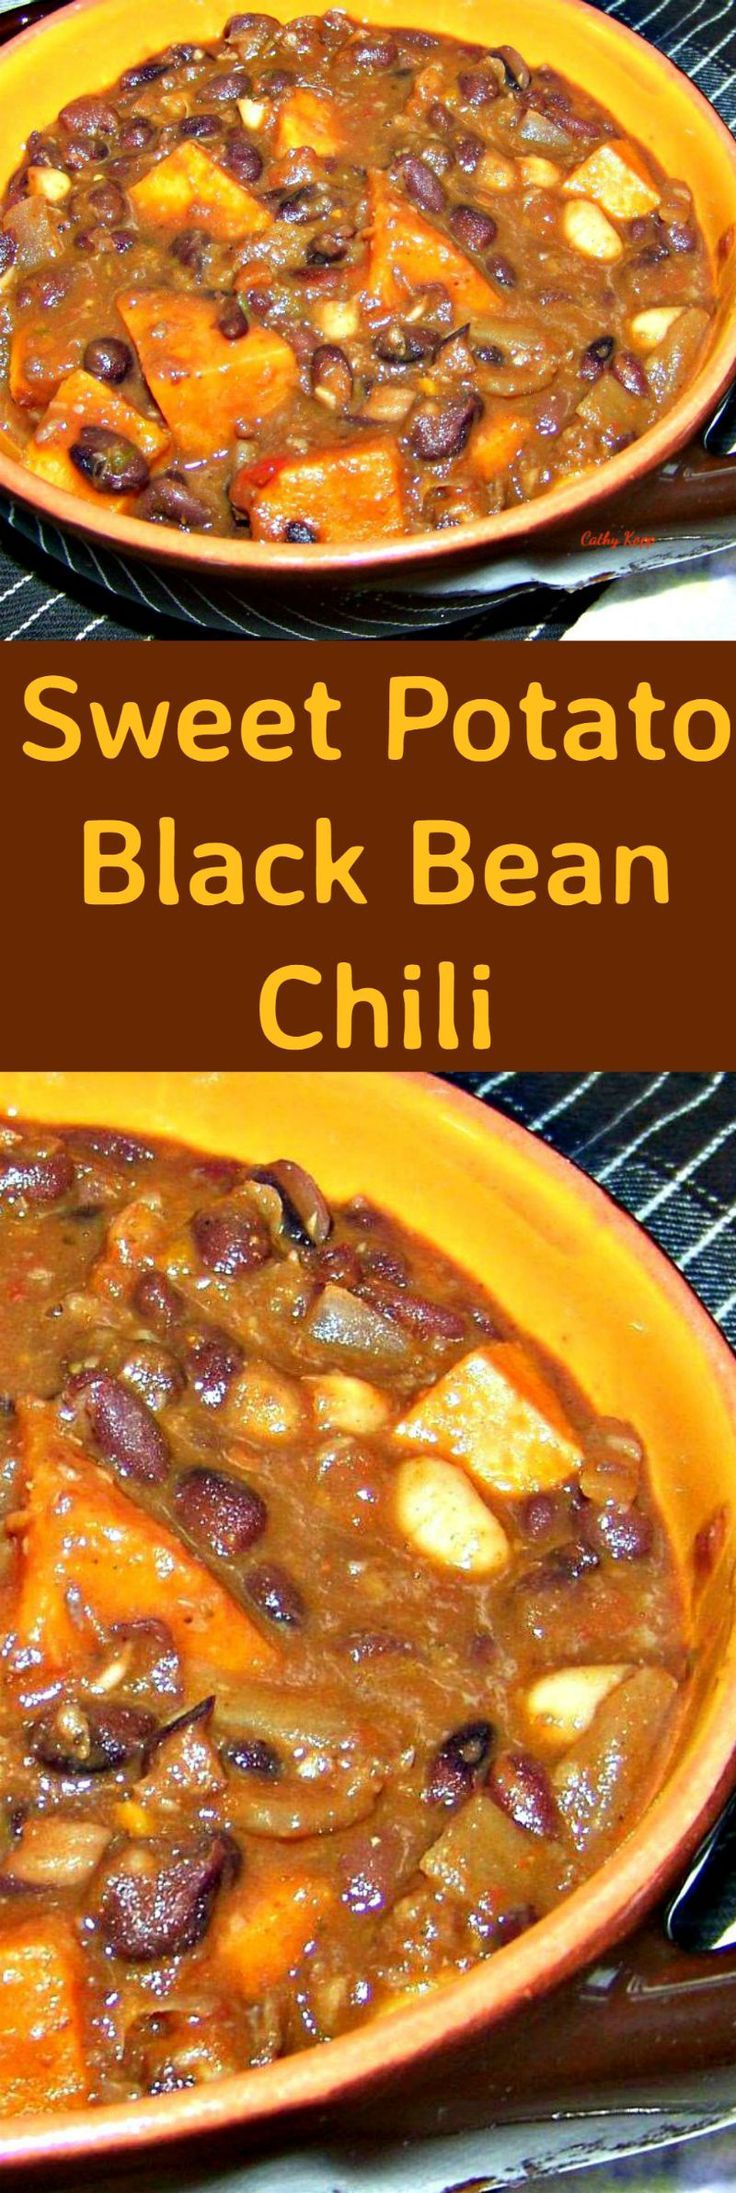 Sweet Potato Black Bean Chili is an easy, fuss free and budget friendly recipe full of flavor and lovely to keep you warm! With the addition of sausage meat, salsa and many other goodies, you can be sure this will fill your tummies!